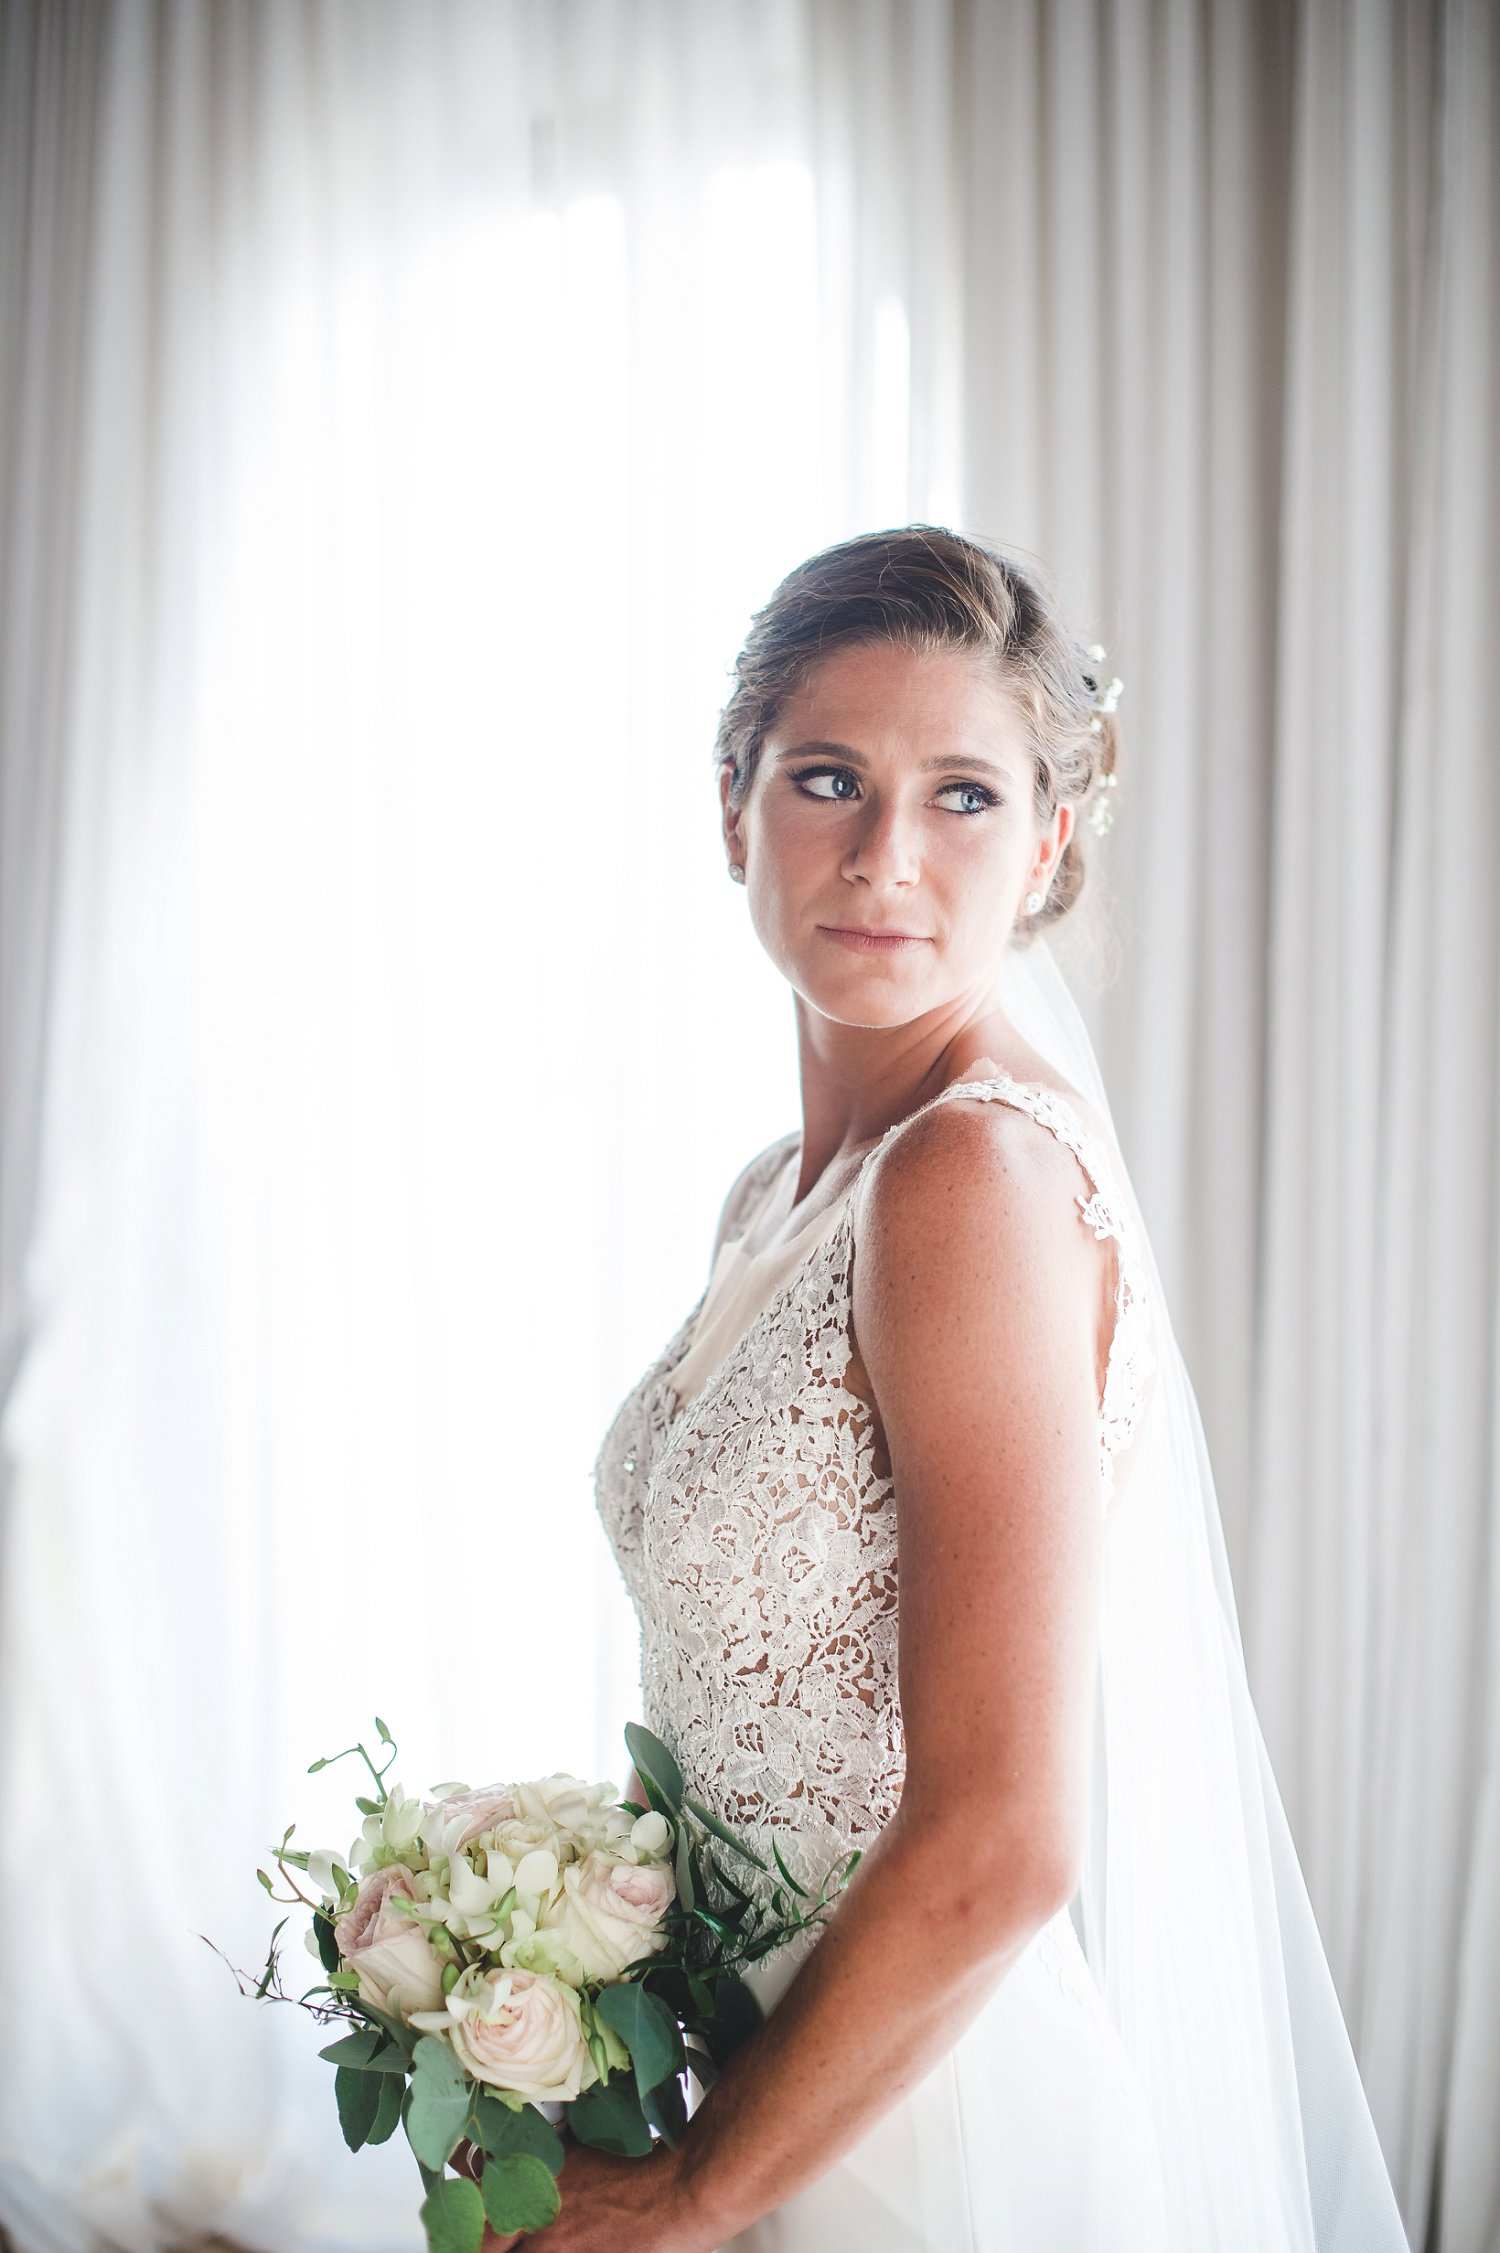 Bridal portrait with lace bodice gown for destination wedding in St. Thomas